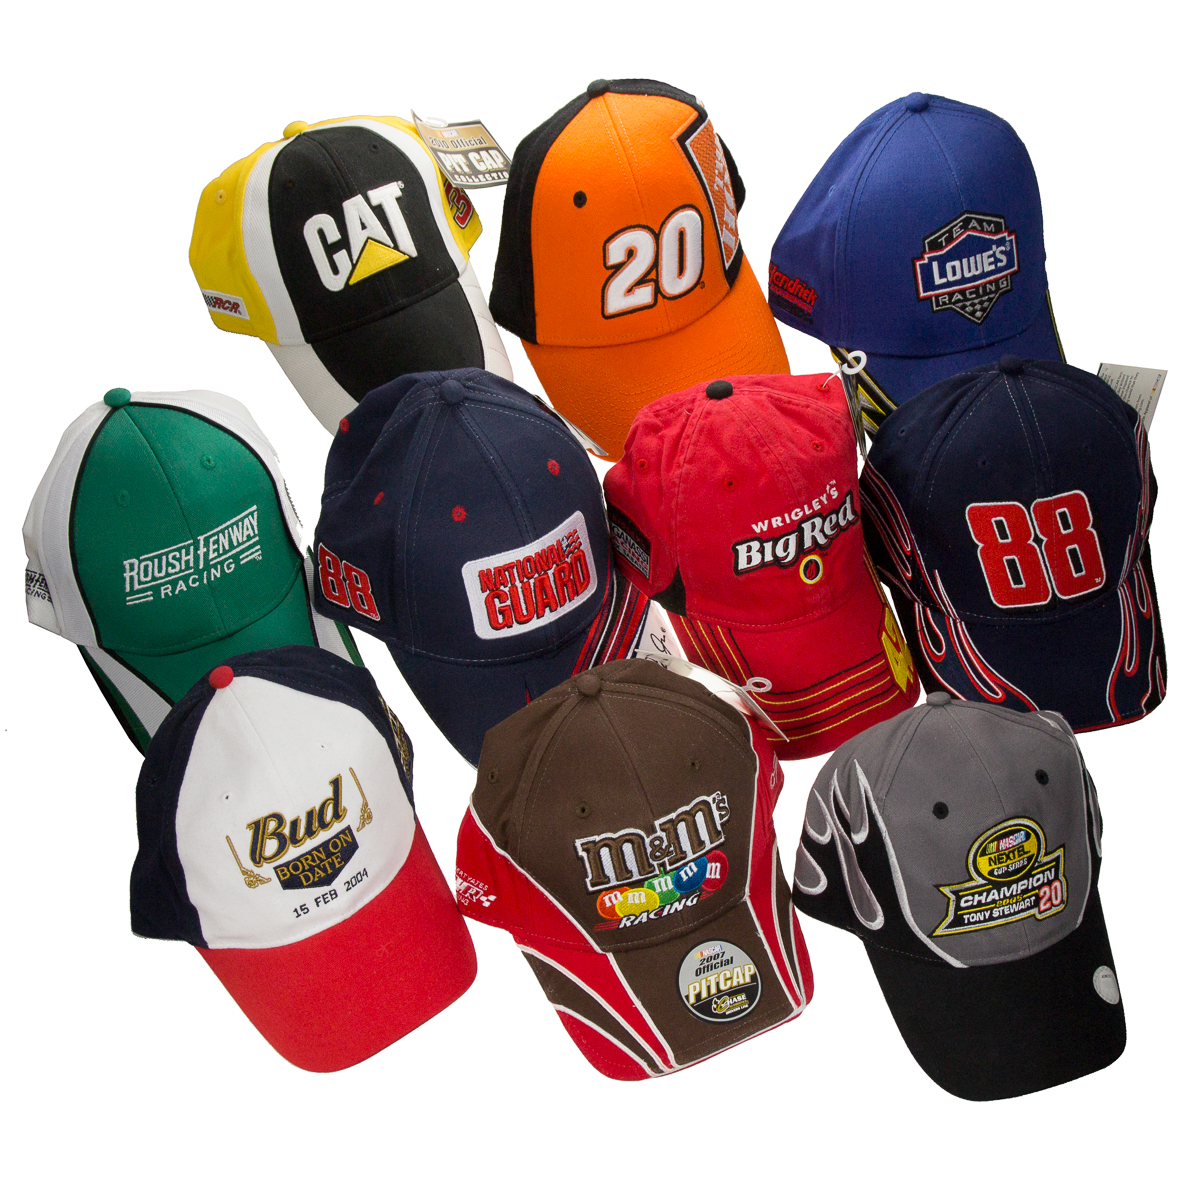 Lot of 10 Assorted Random NASCAR Hats Racing Caps Adjustable Size Bulk Wholesale